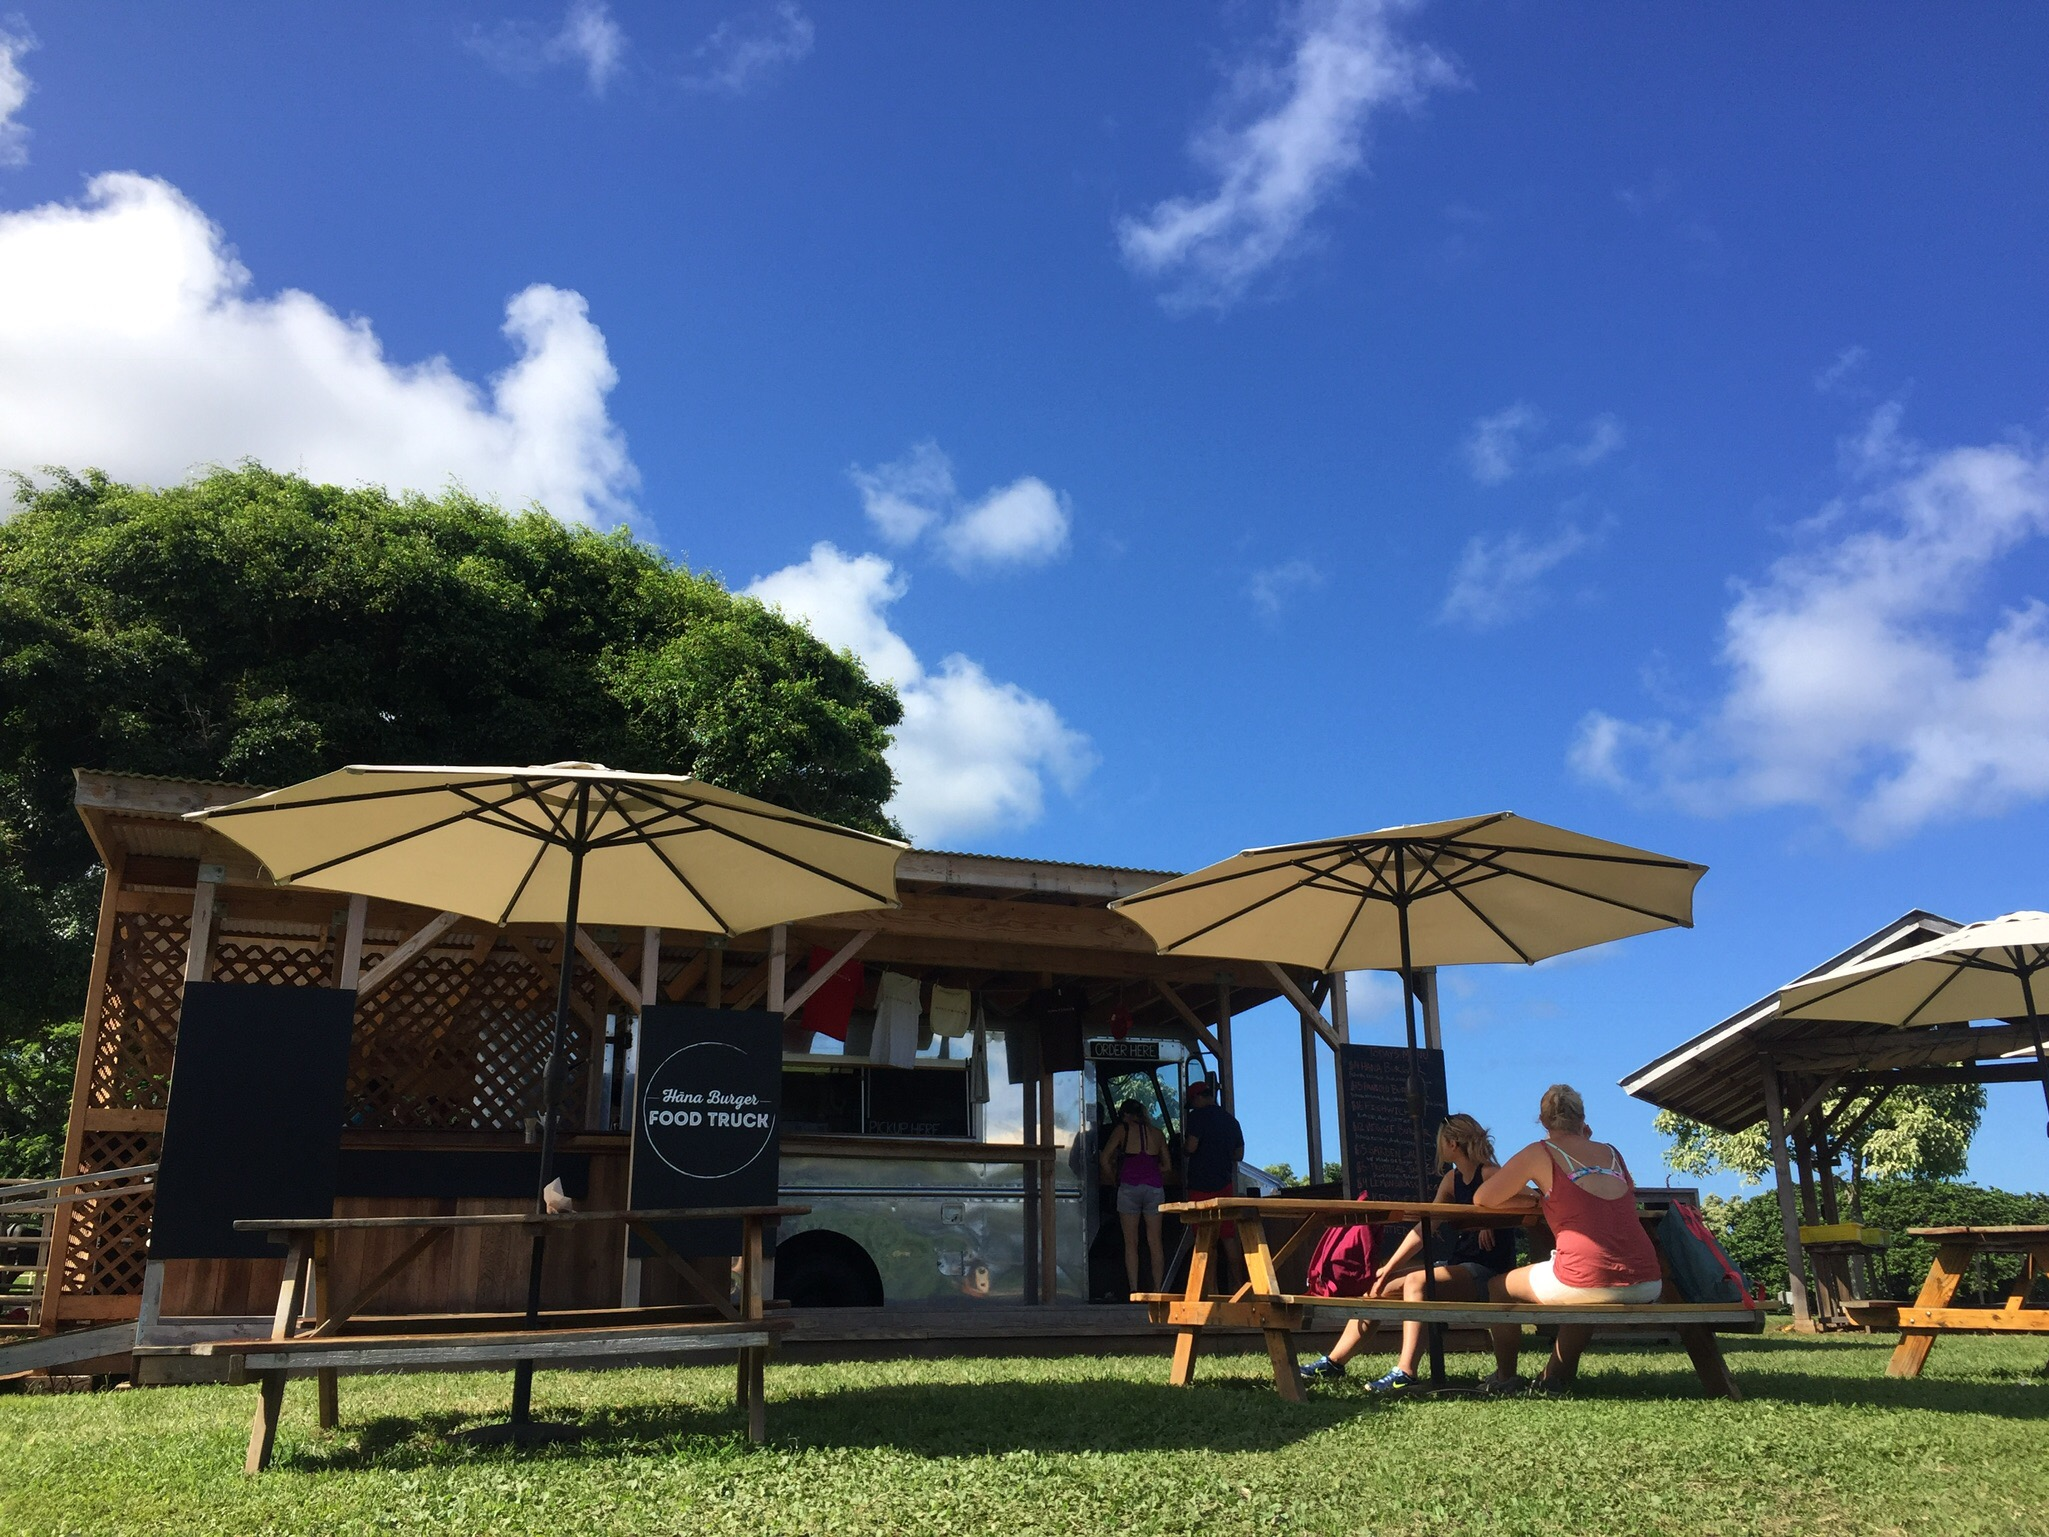 We were starving on the way back from the hike, so we stopped for food at this sweet little food truck in Hana.